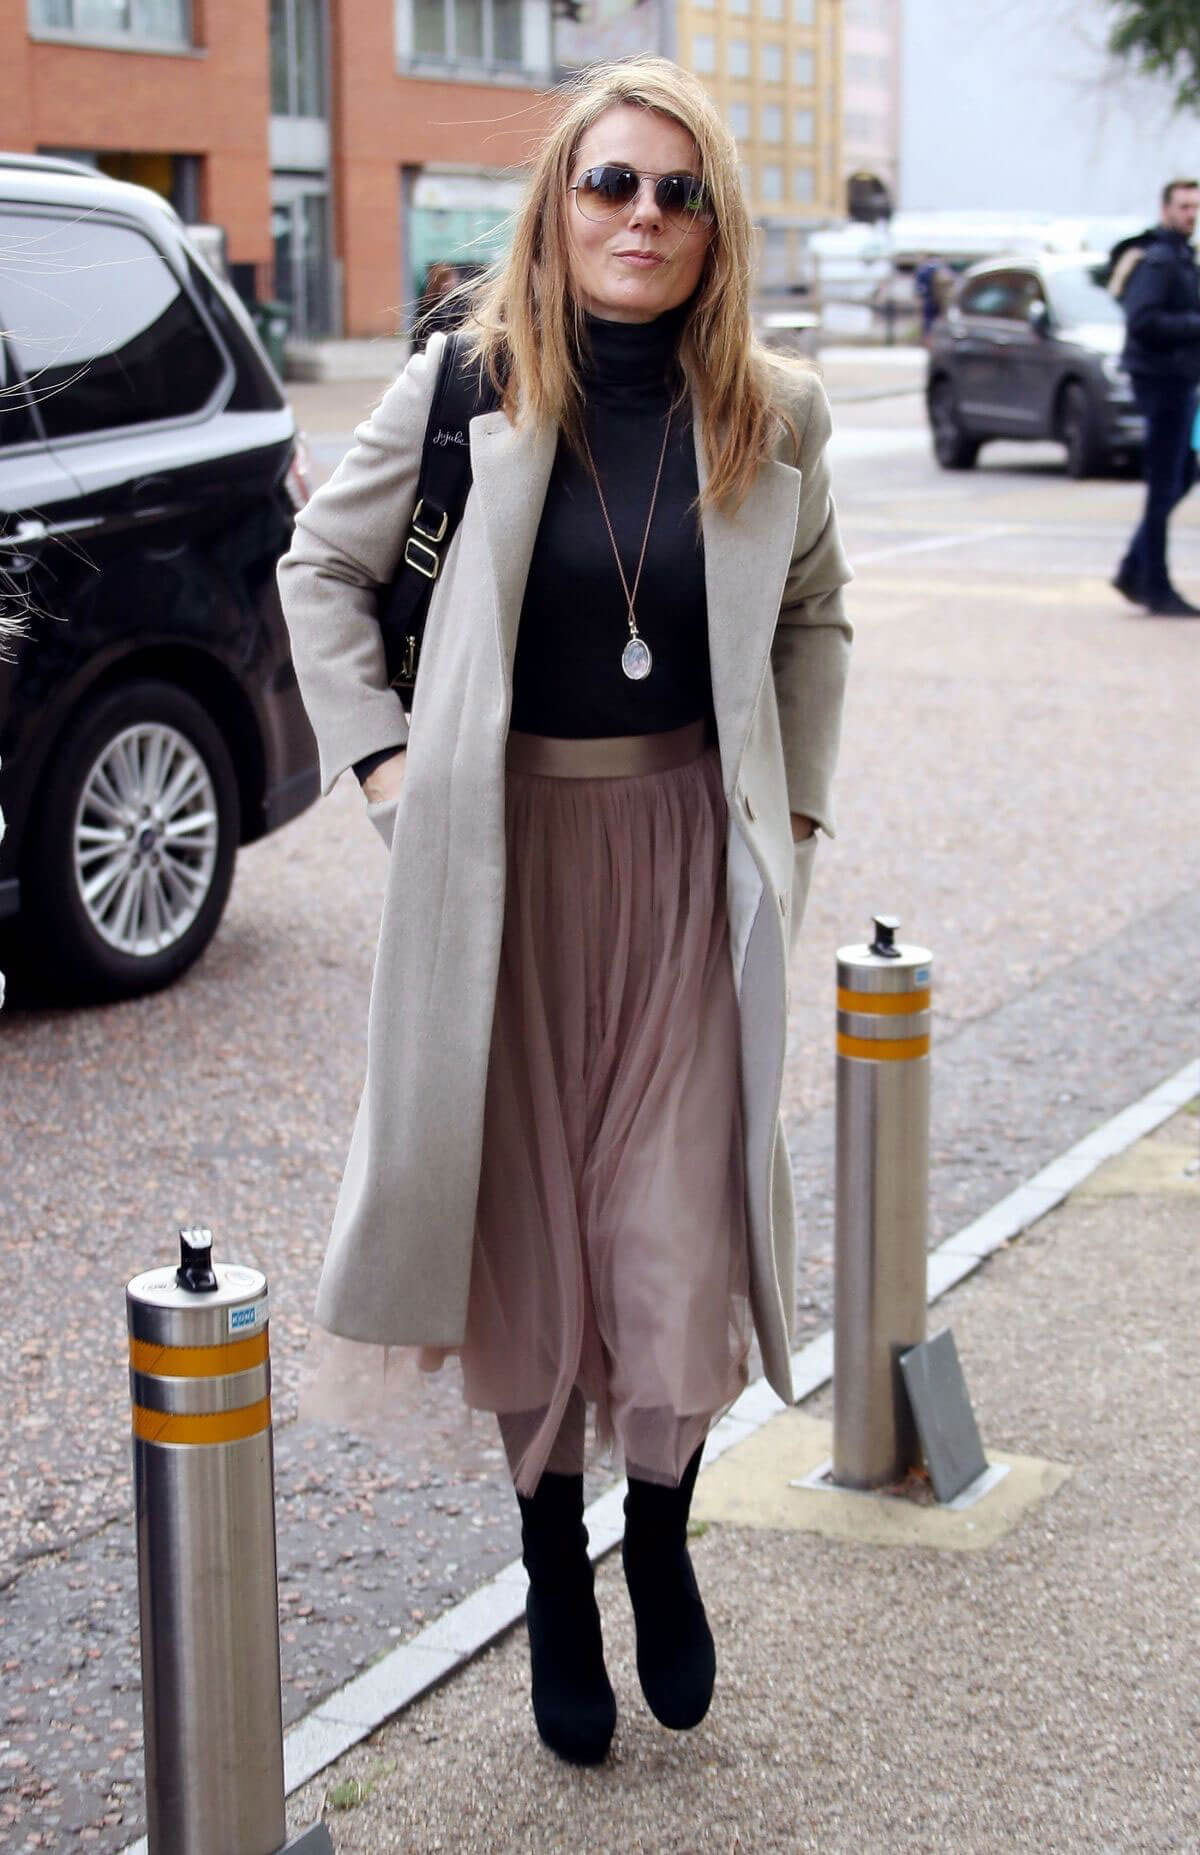 Geri Horner wears Long Winter Coat Leaves ITV Studios in London